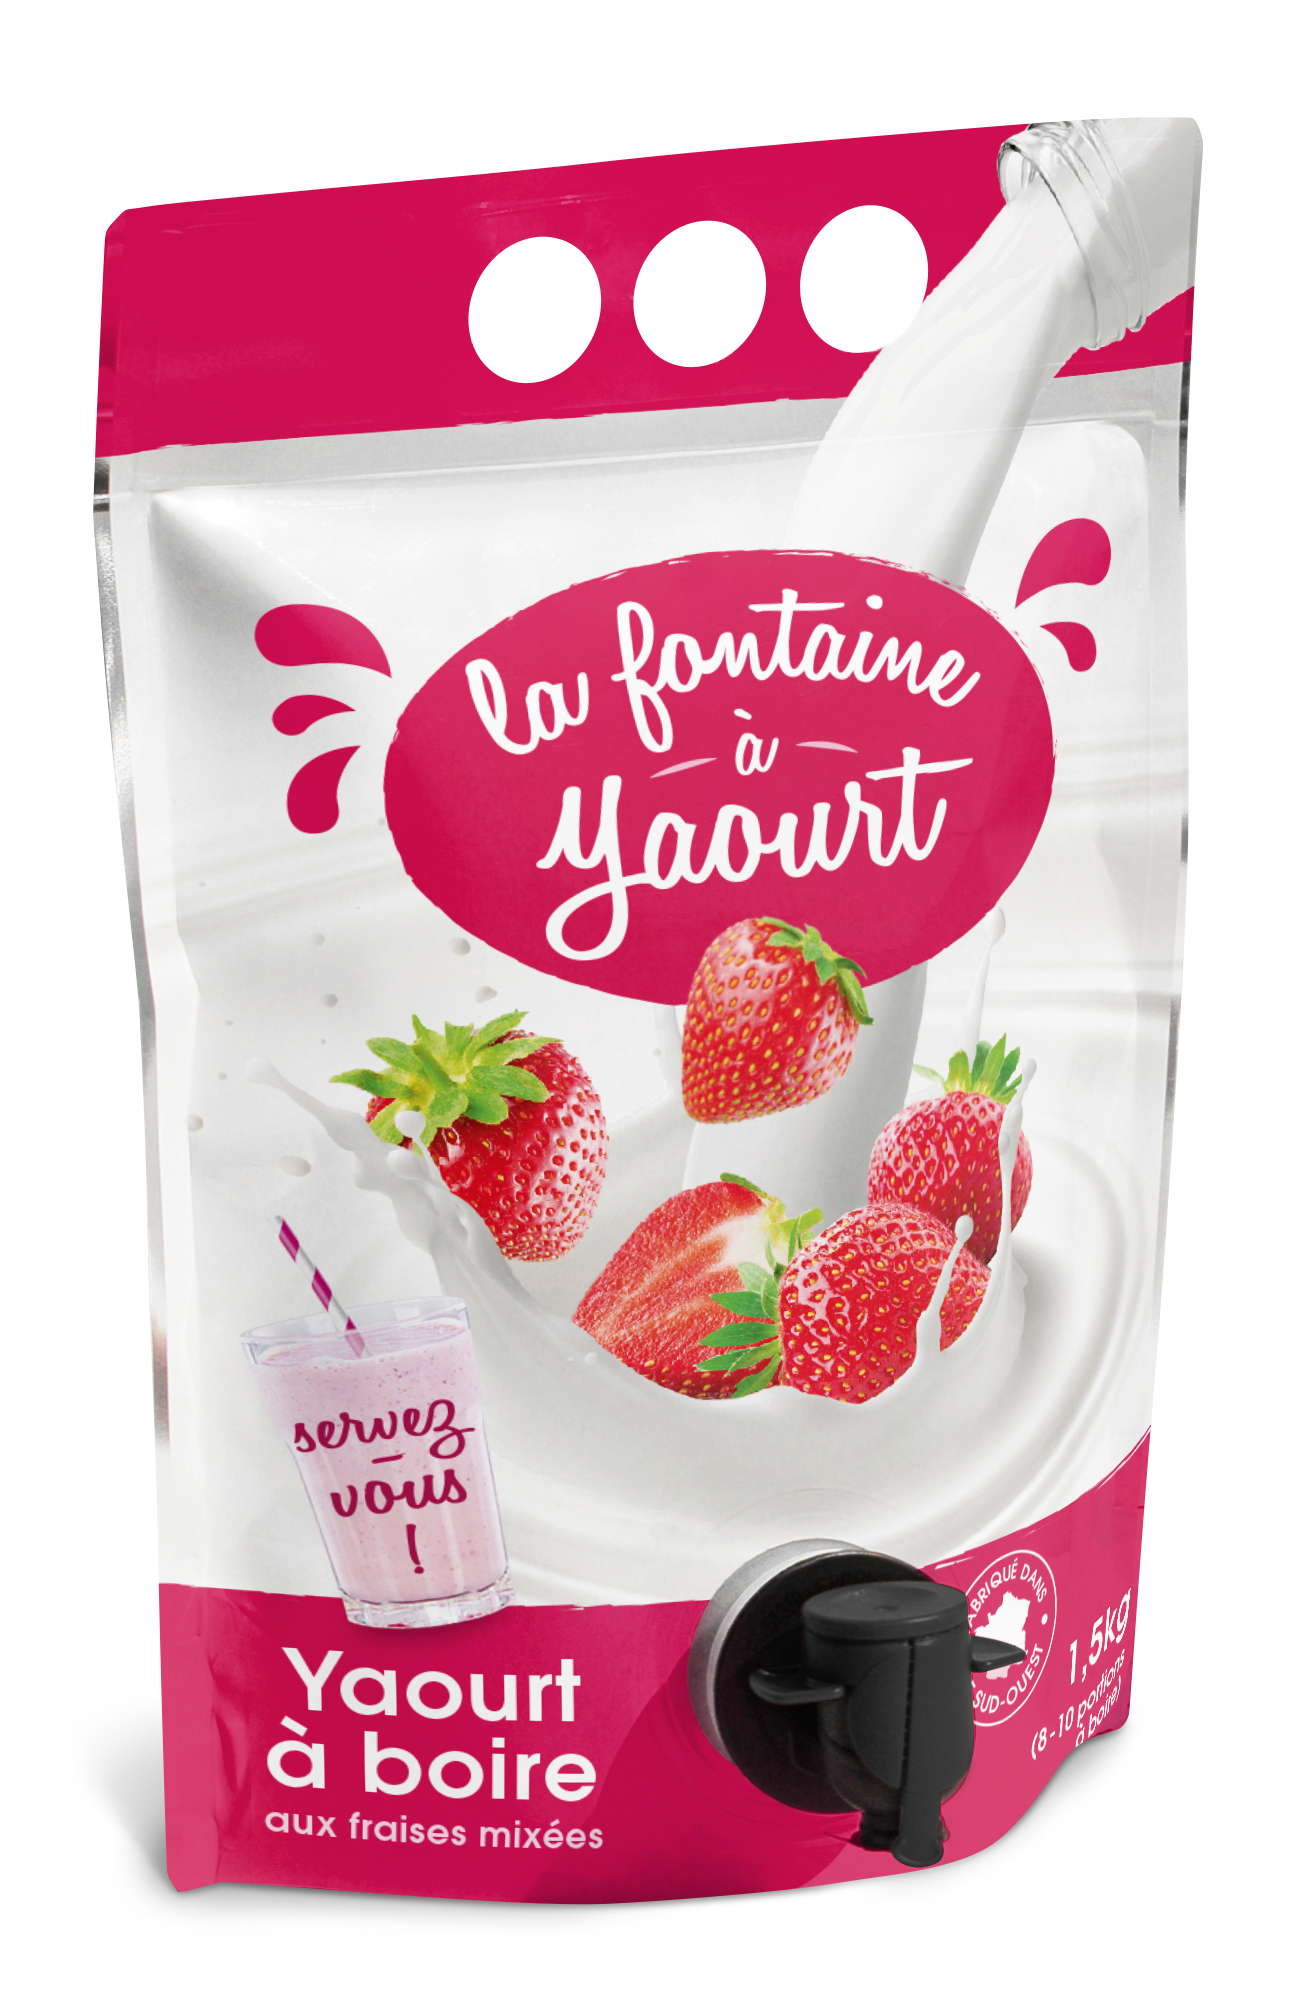 La fontaine yaourt packaging innovant pour yaourt boire for Idee produit innovant